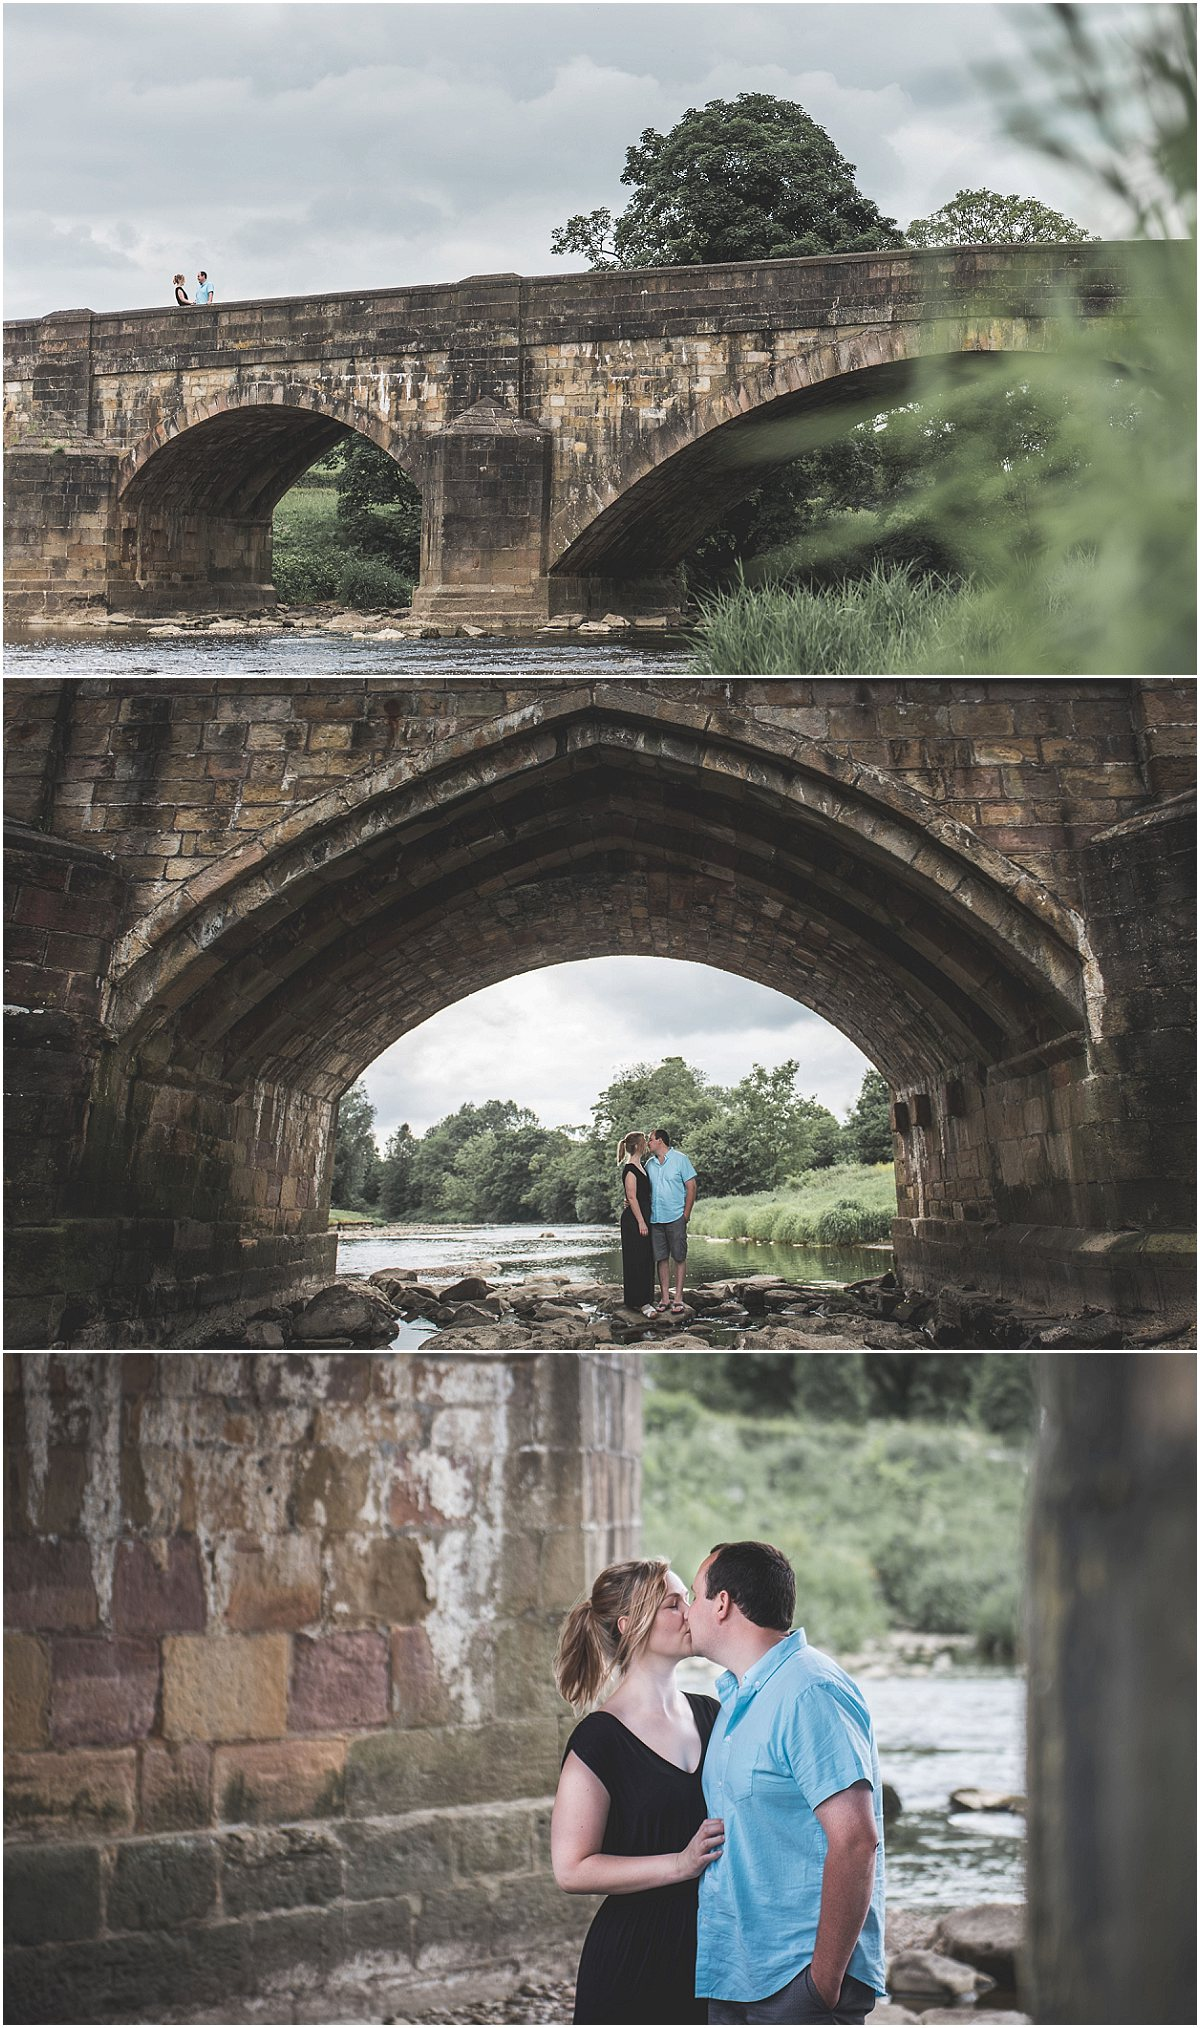 Couple Photoshoot on Edisford Bridge | Preston Wedding Photographer